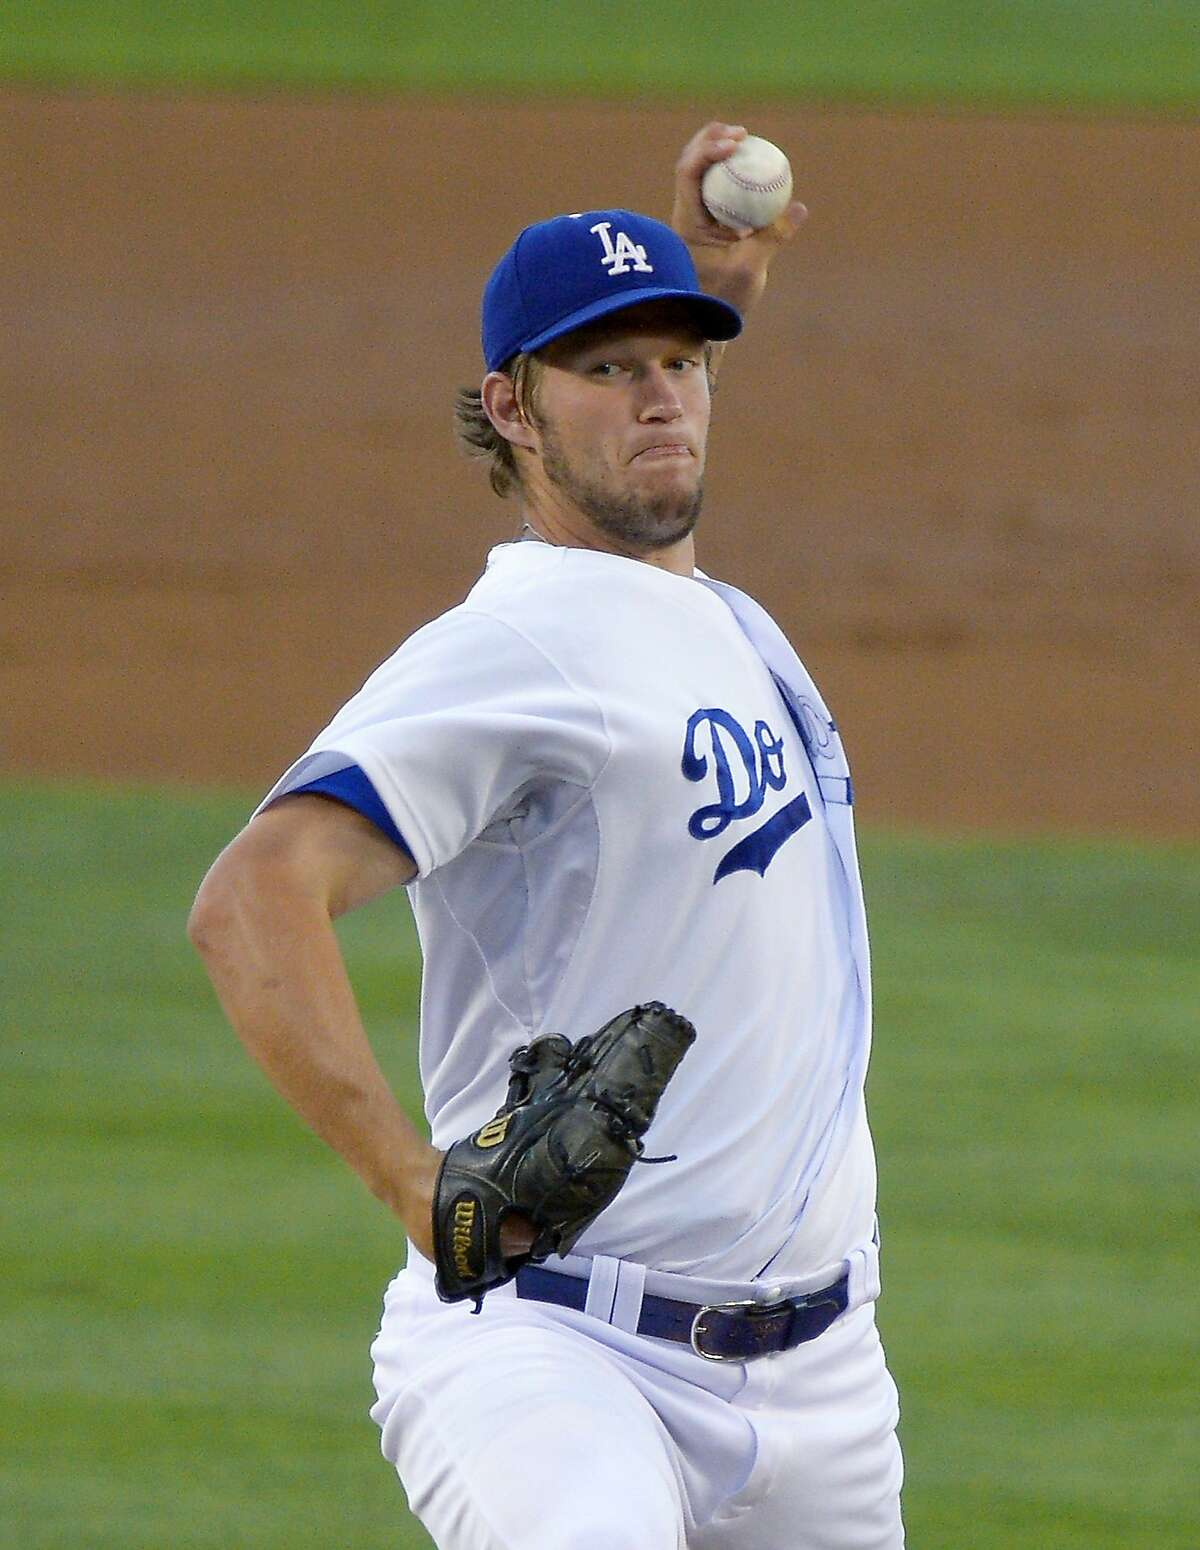 Los Angeles Dodgers starting pitcher Clayton Kershaw throws to the plate during the second inning of a baseball game against the San Francisco Giants, Wednesday, June 26, 2013, in Los Angeles. (AP Photo/Mark J. Terrill)